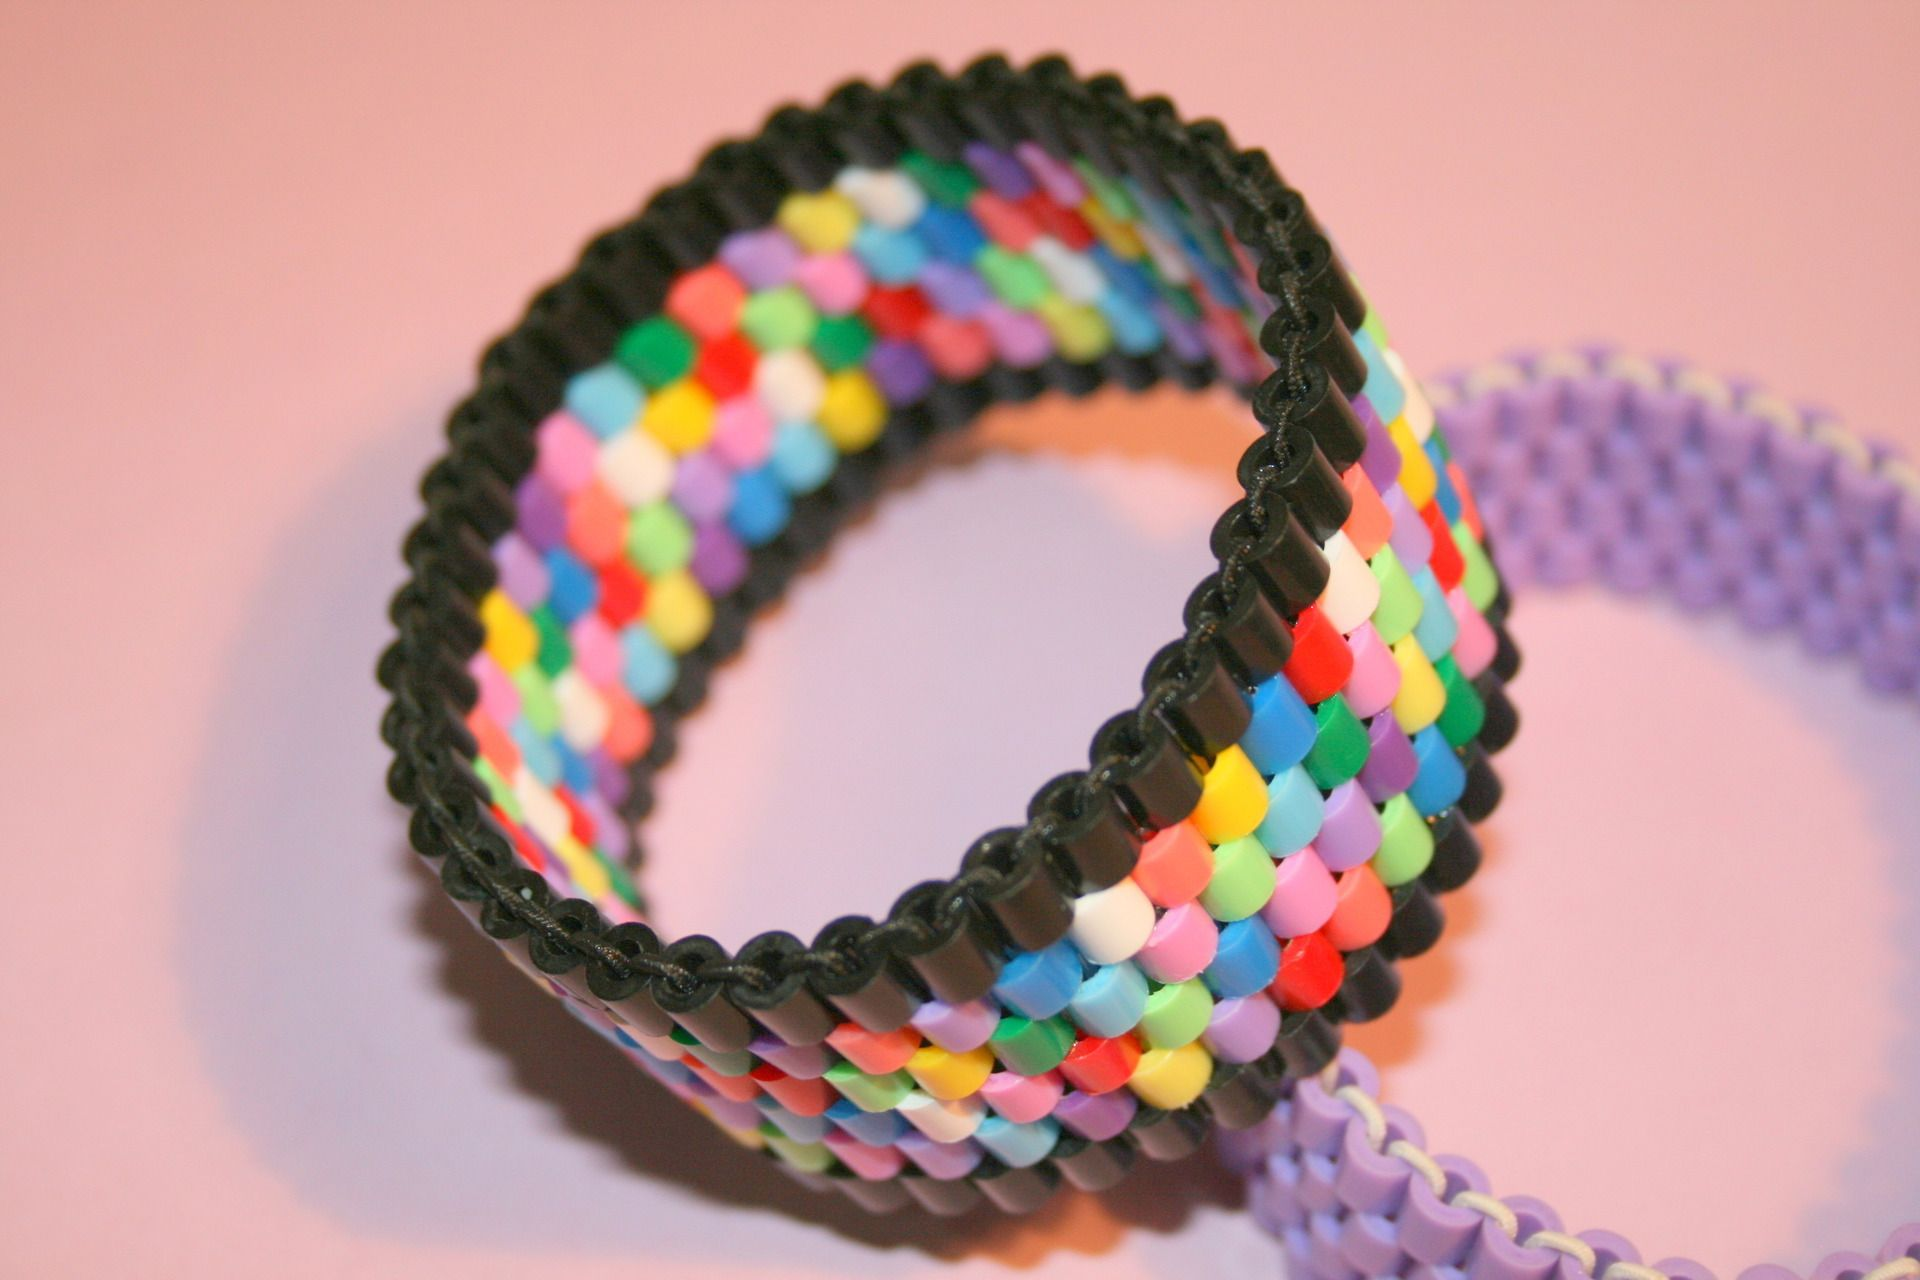 s crafts so beads bracelet perler diy to how bead easy bracelets learn make it